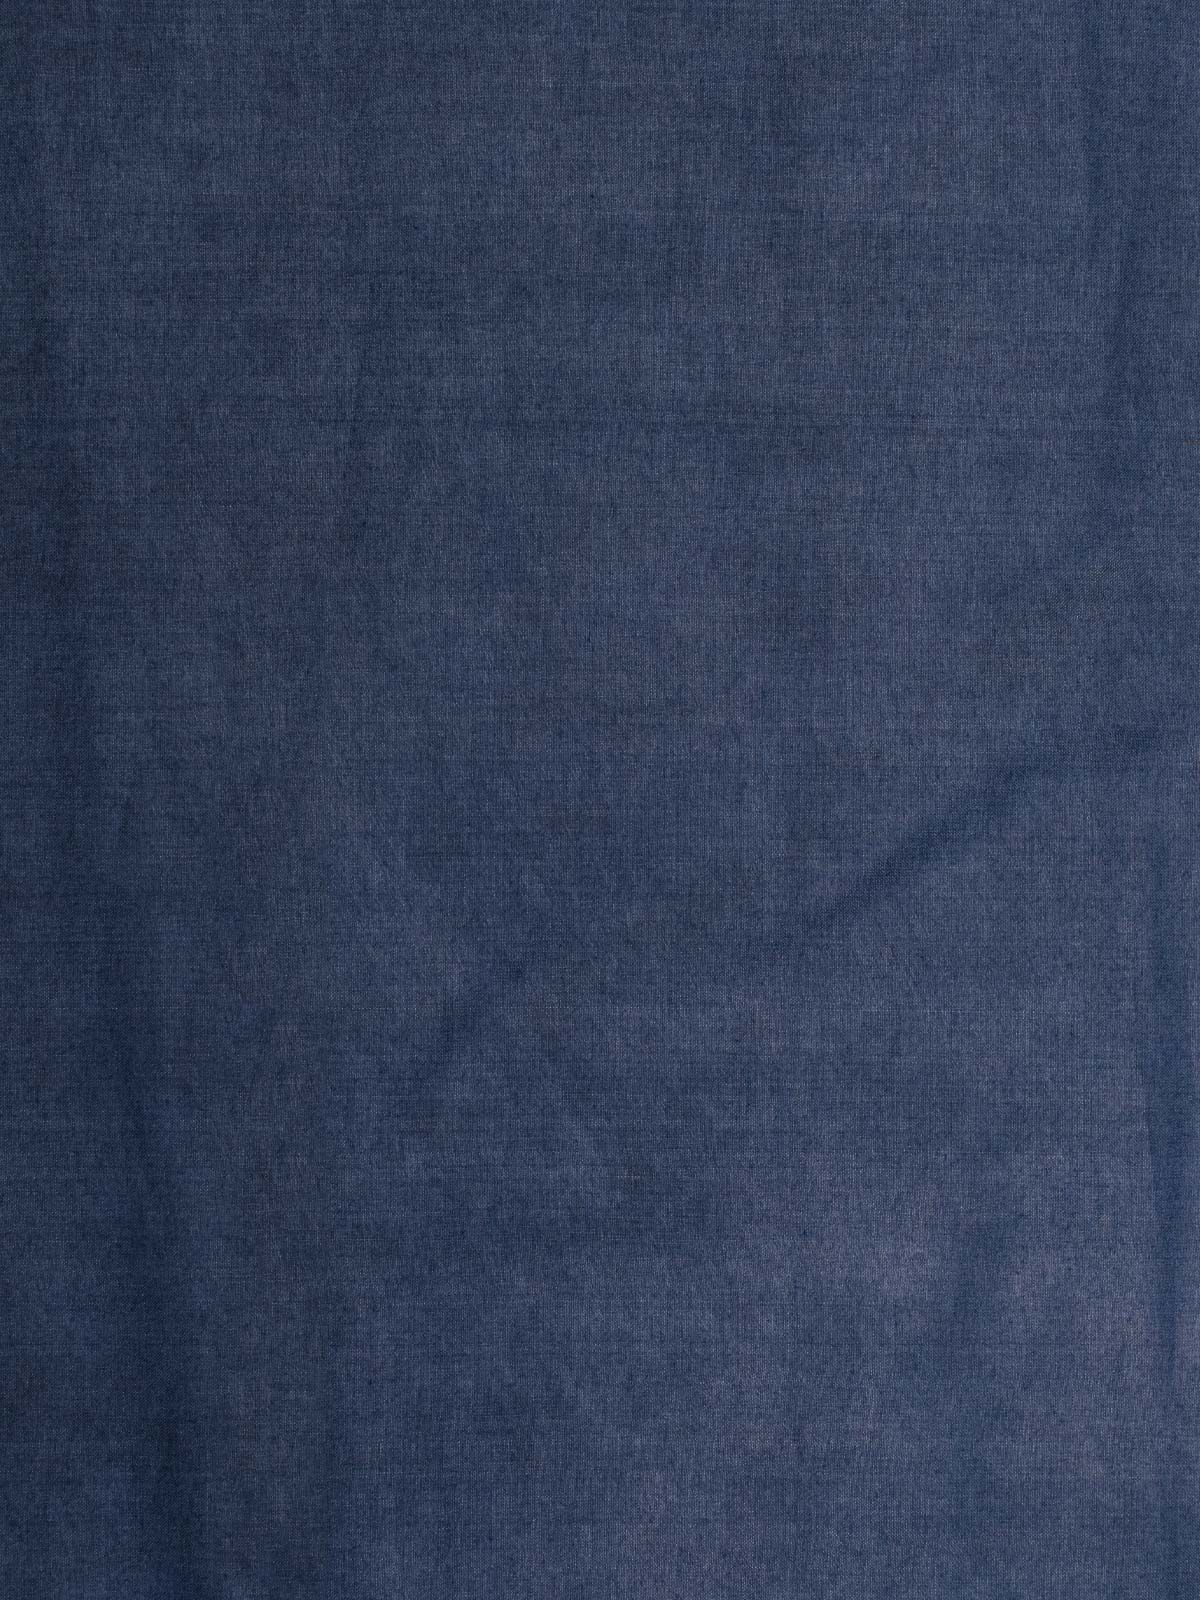 Denim color cotton silk fabric